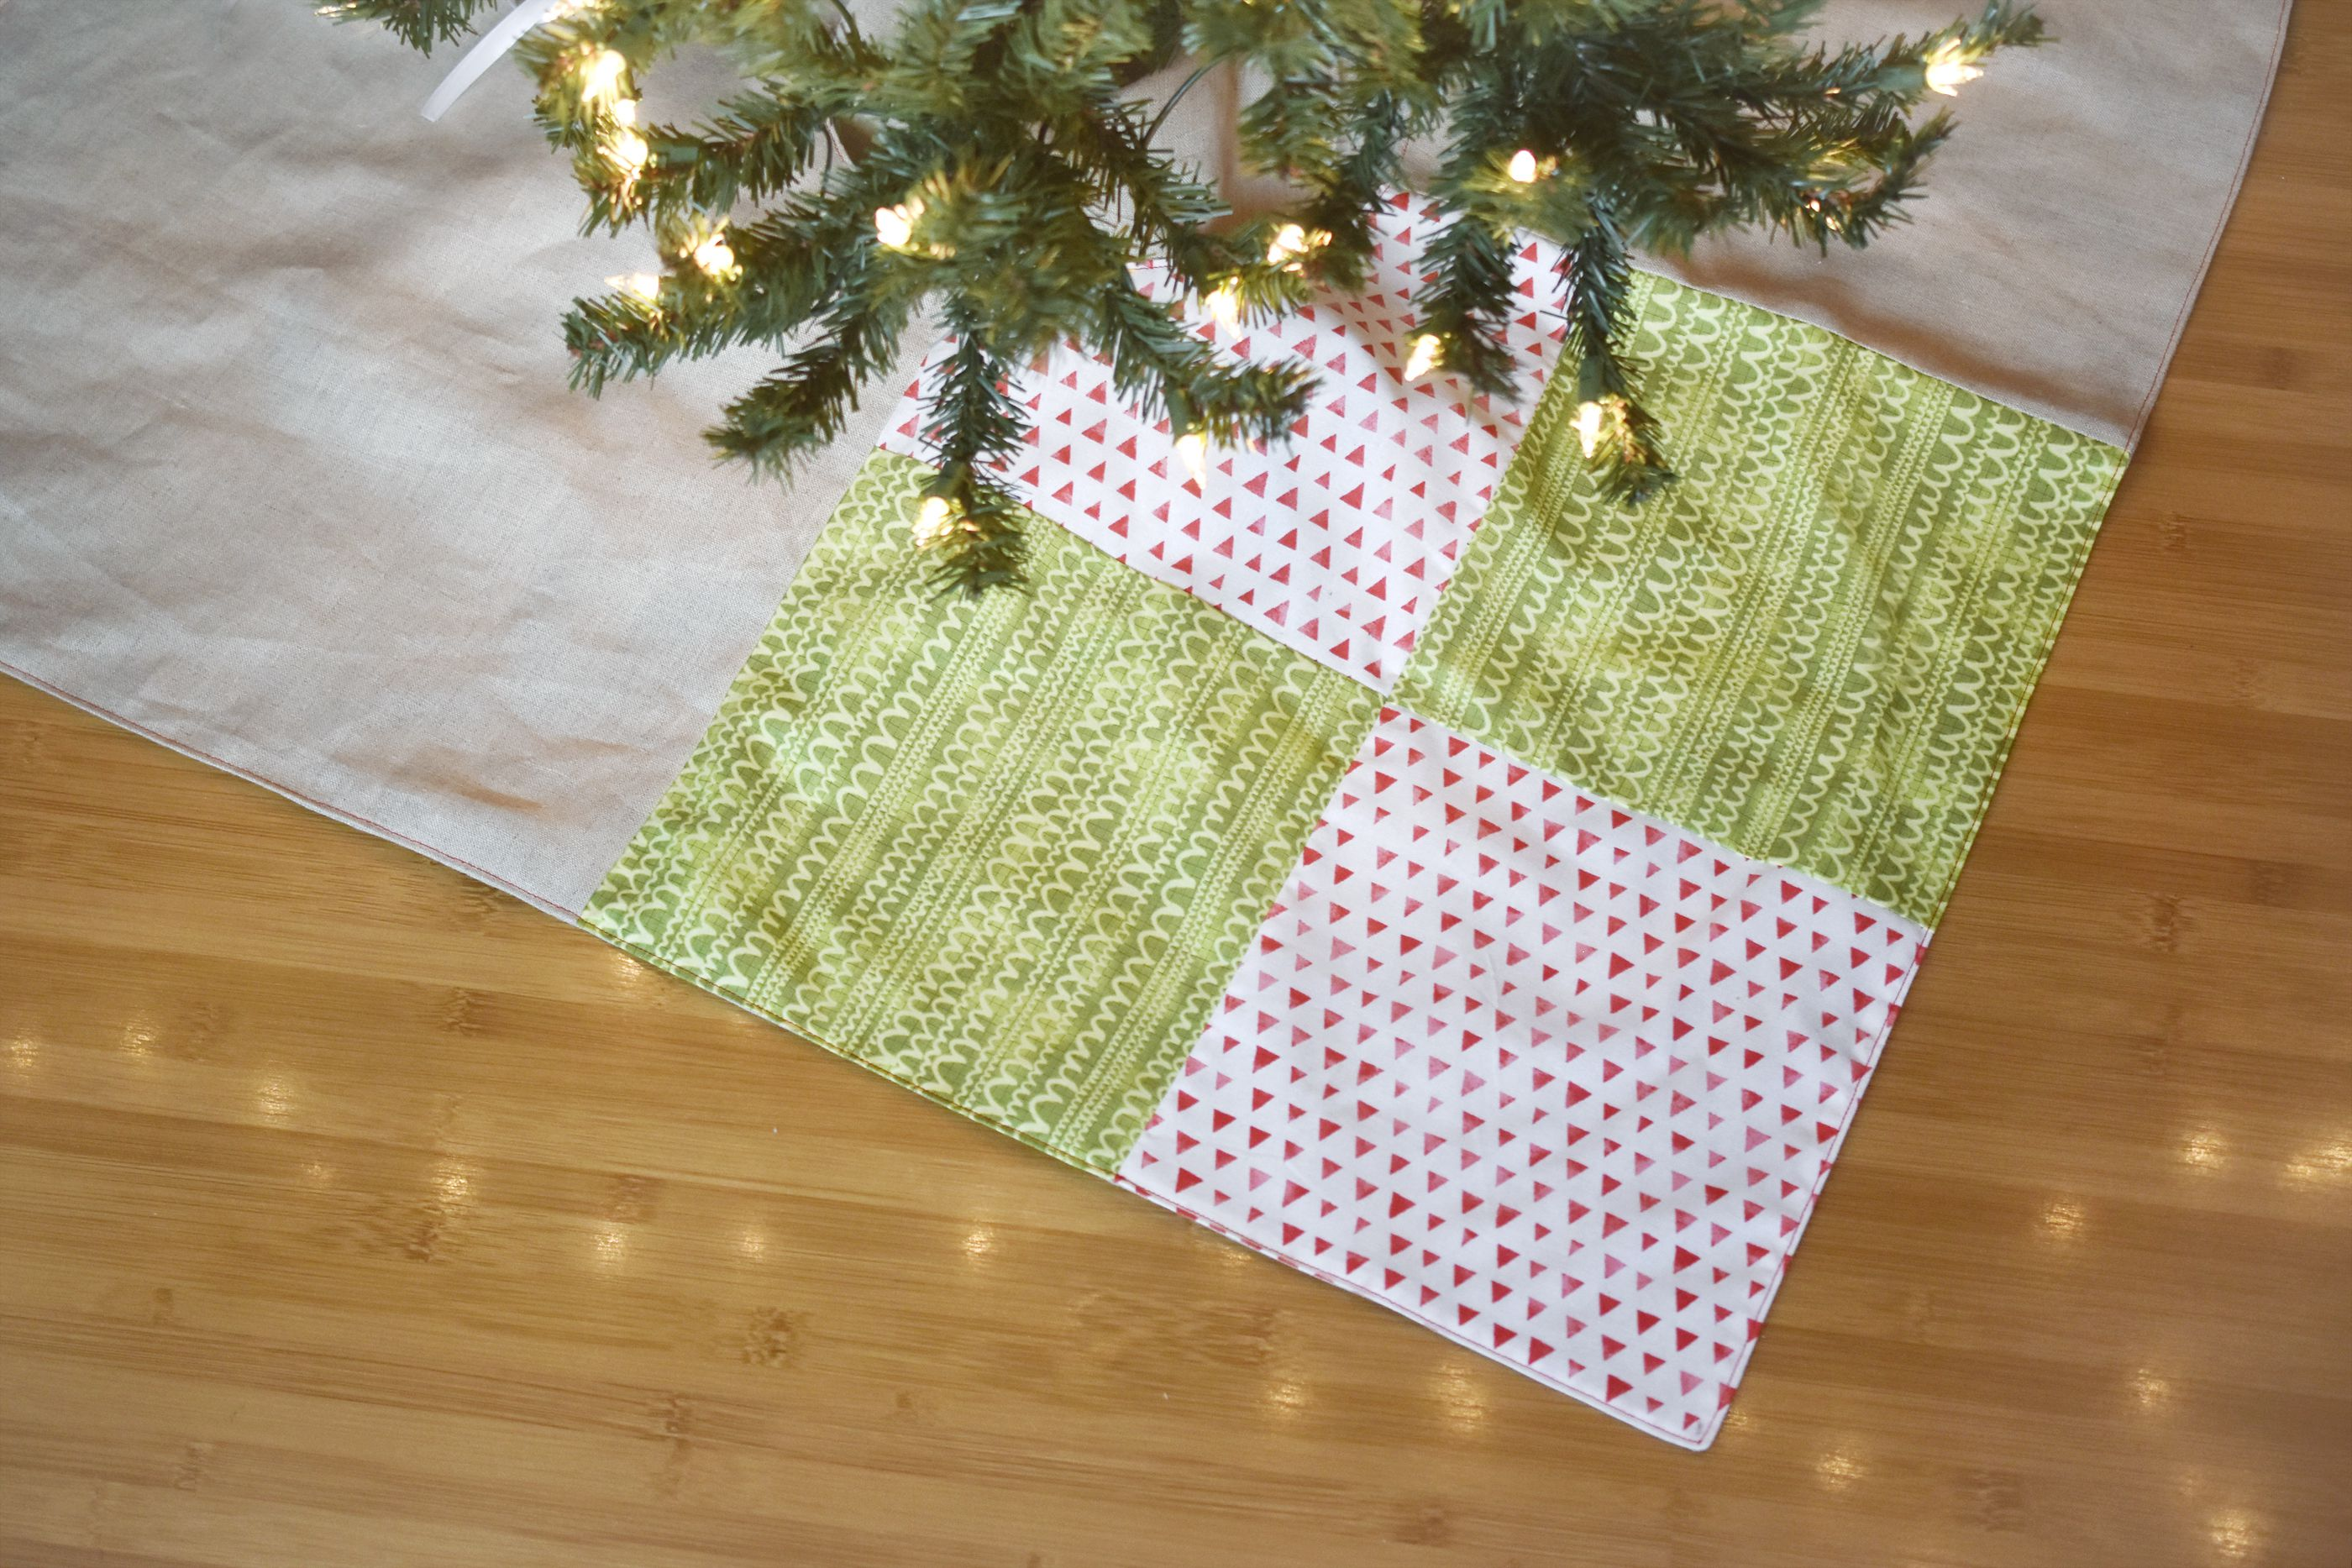 Sew A Simple Patchwork Christmas Tree Skirt